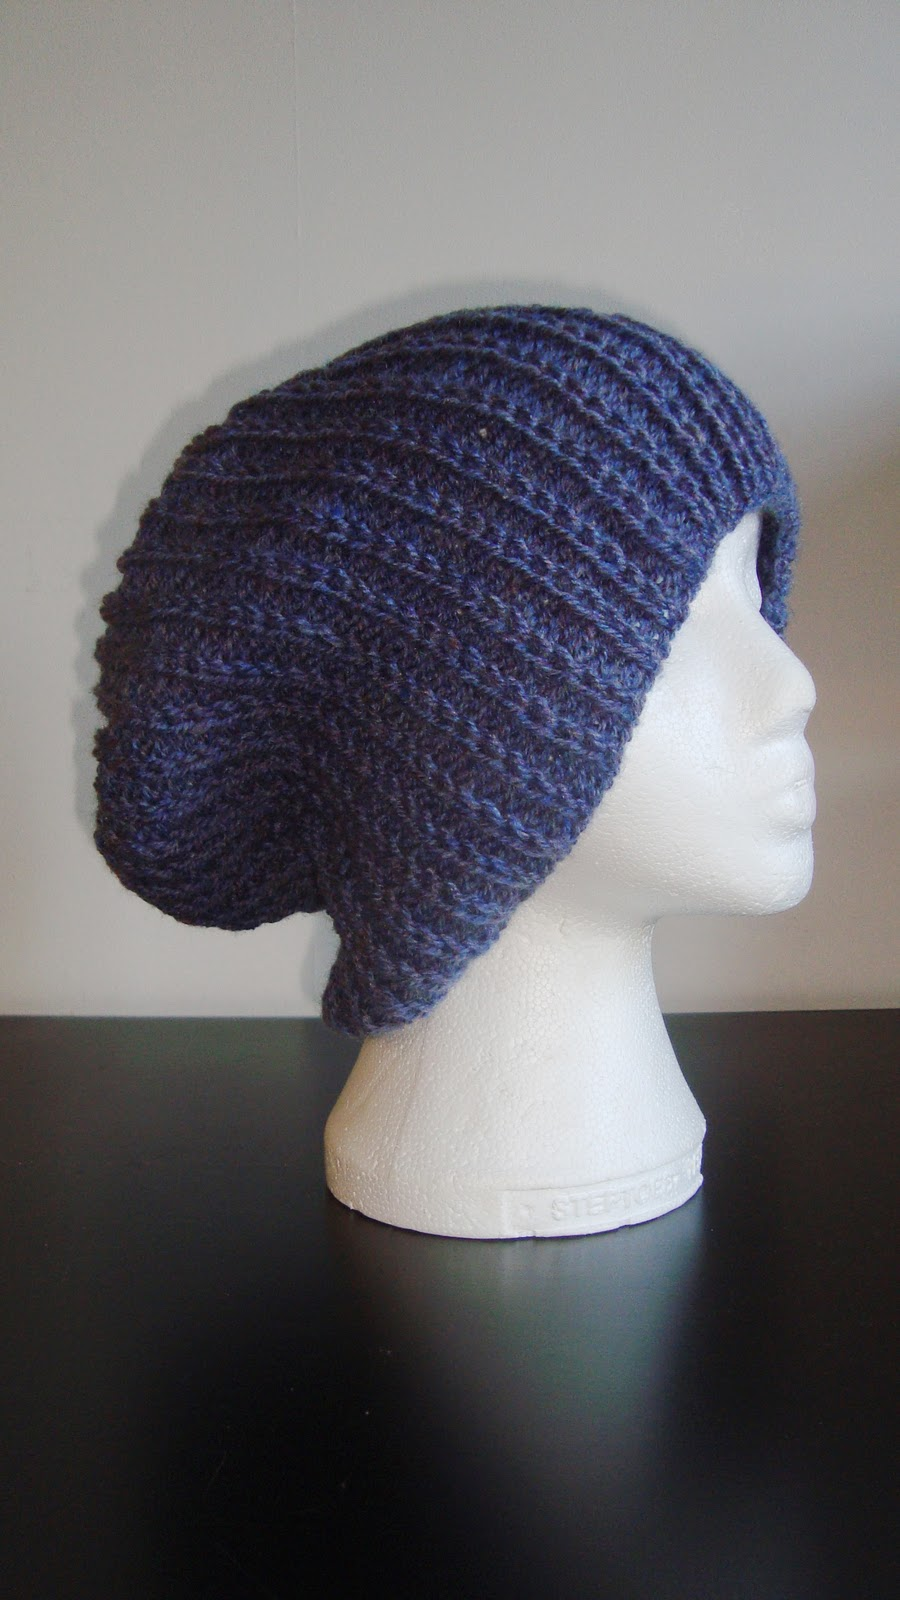 Knitting Pattern For An Aran Hat : HAND KNITTING PATTERNS. ARAN. COWLS, HATS, SCARVES AND NECK WARMERS